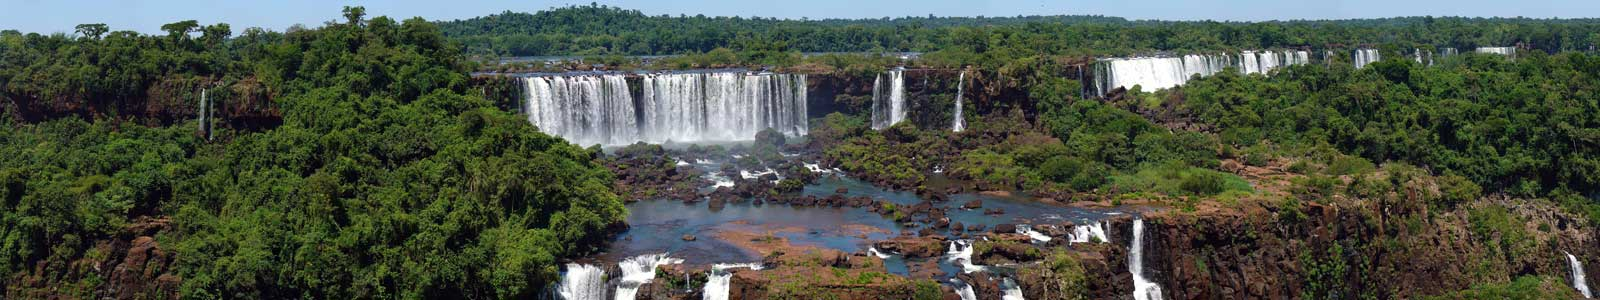 Argentina in Three Parts: Iguazu